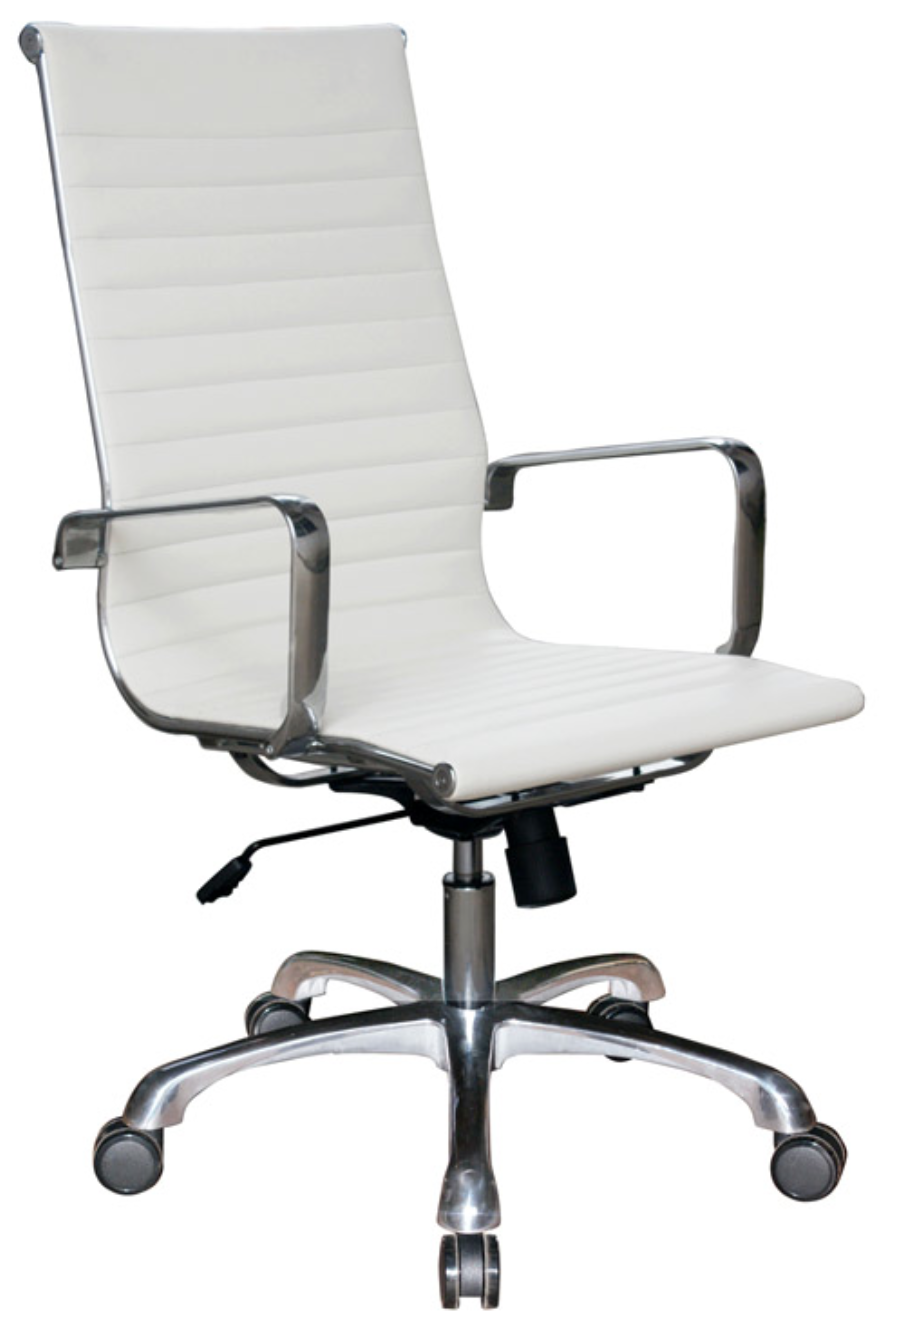 the office furniture blog at officeanything: hot new office